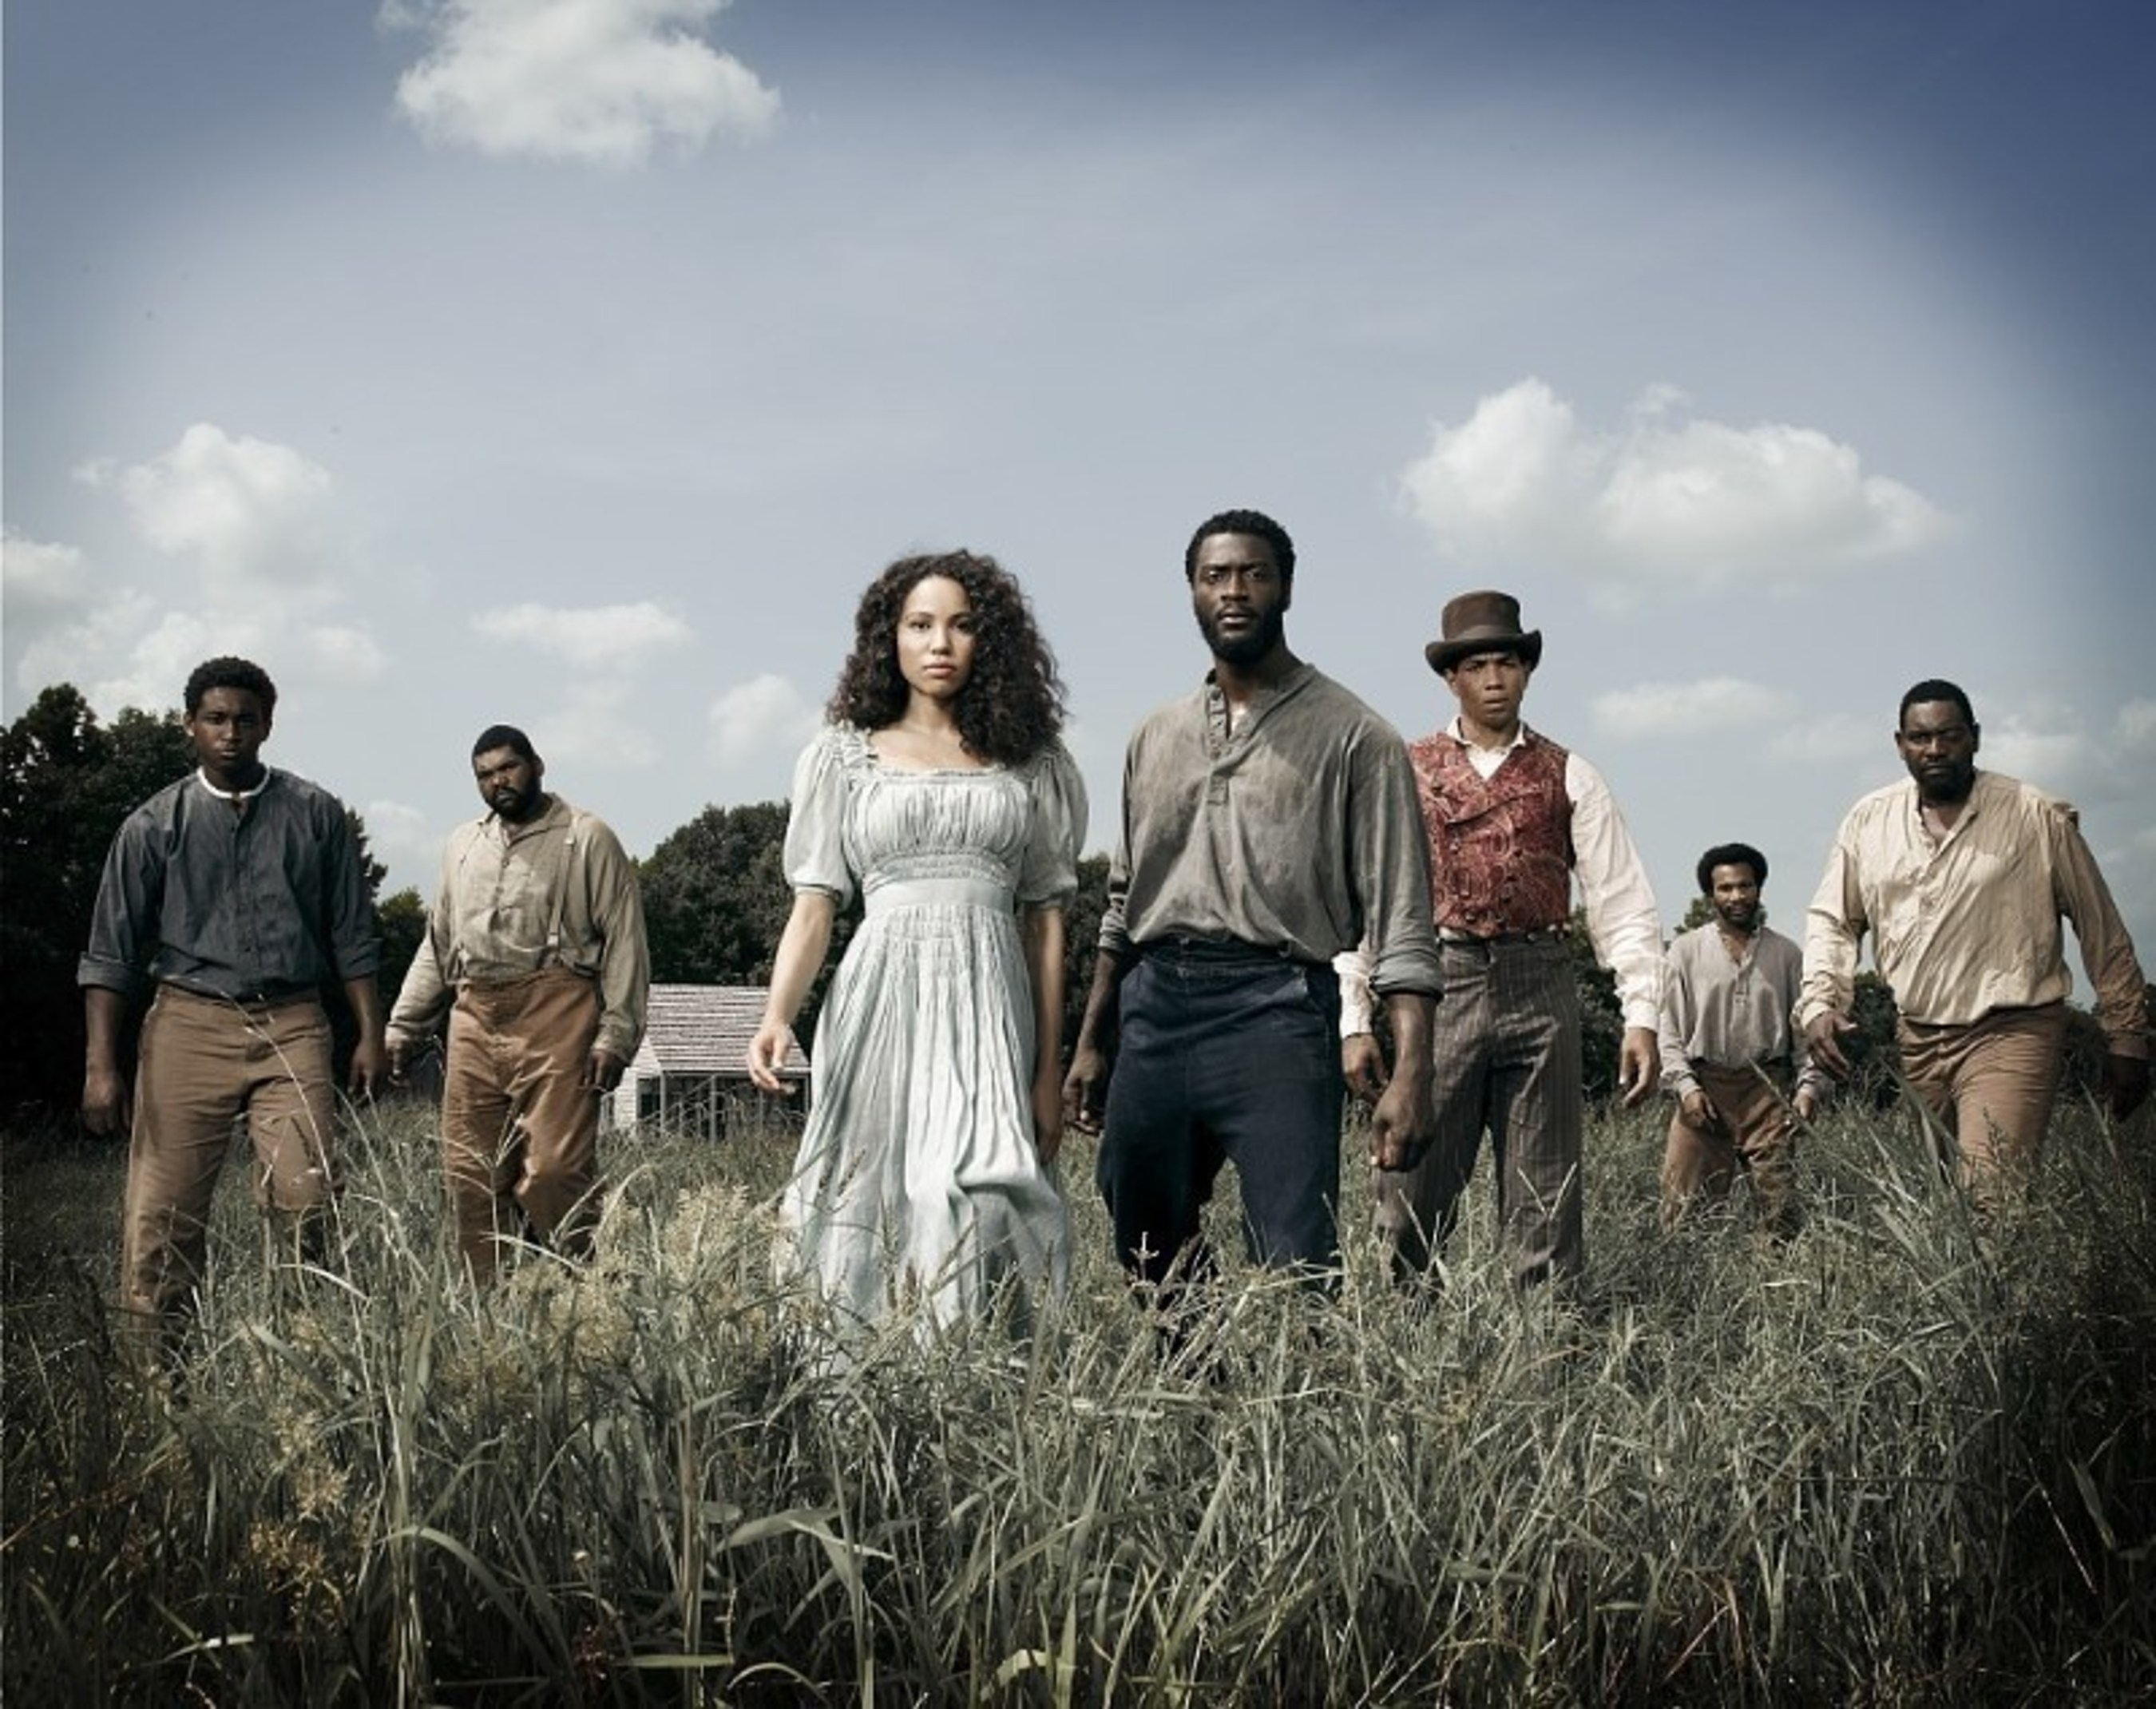 Thrilling Season One Finale Of WGN America's Hit Series 'Underground' Soars As The #1 Scripted Original Series On Cable On Wednesday Night In Key Demos In Live + 3 Vie